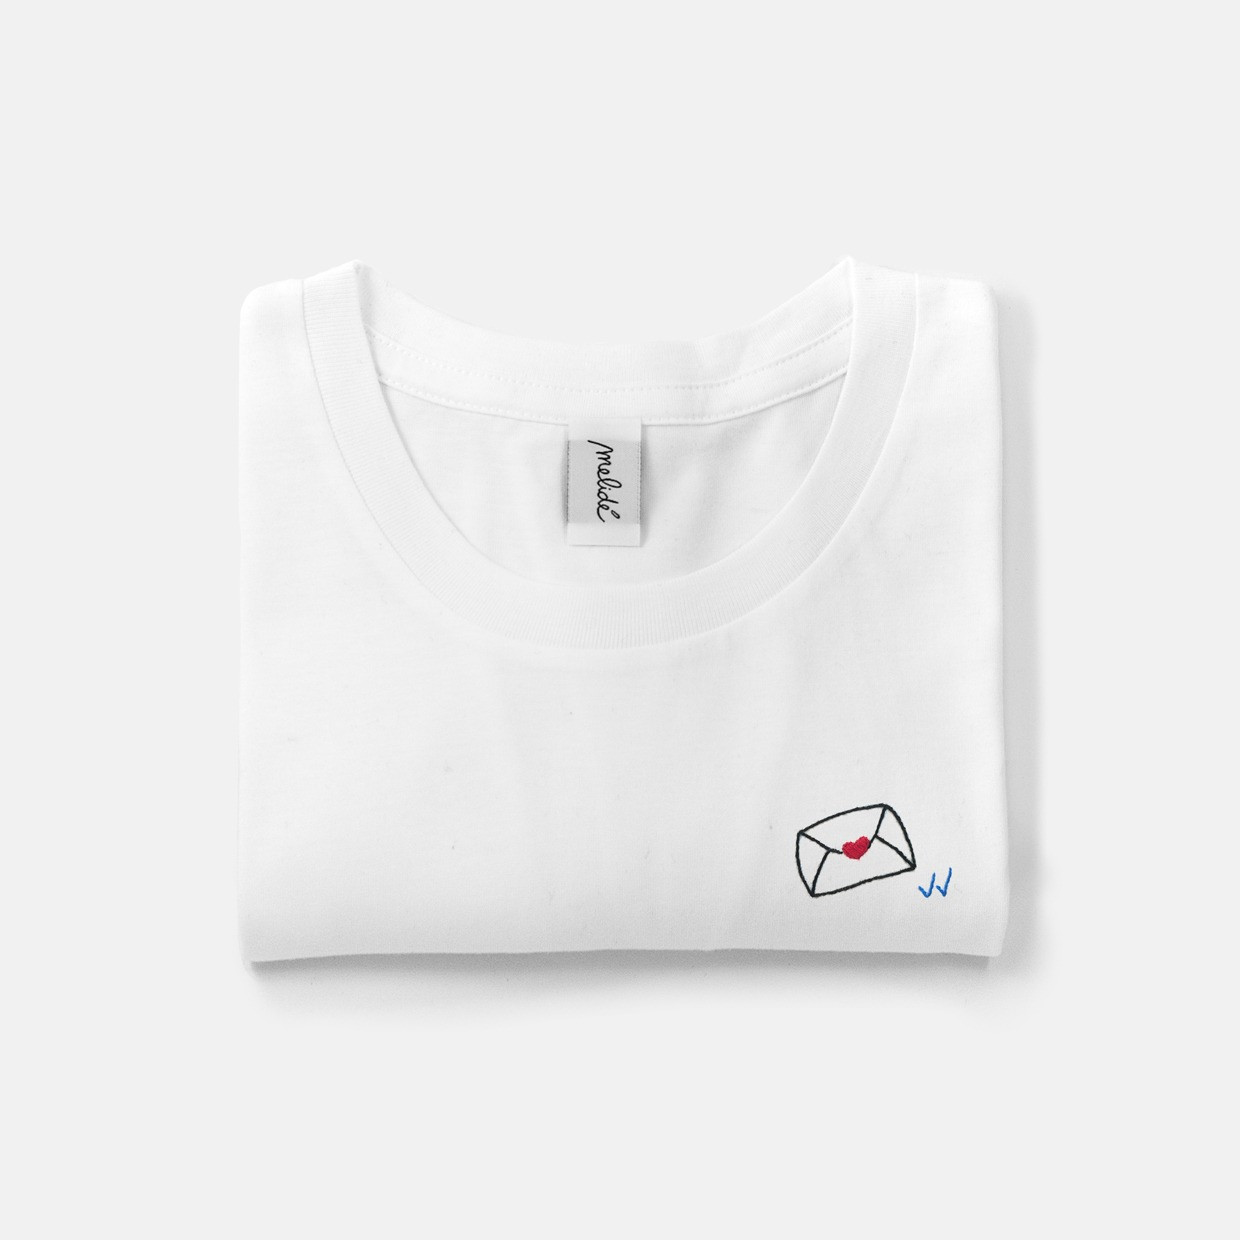 The LOVE FROM AFAR ultimate tee